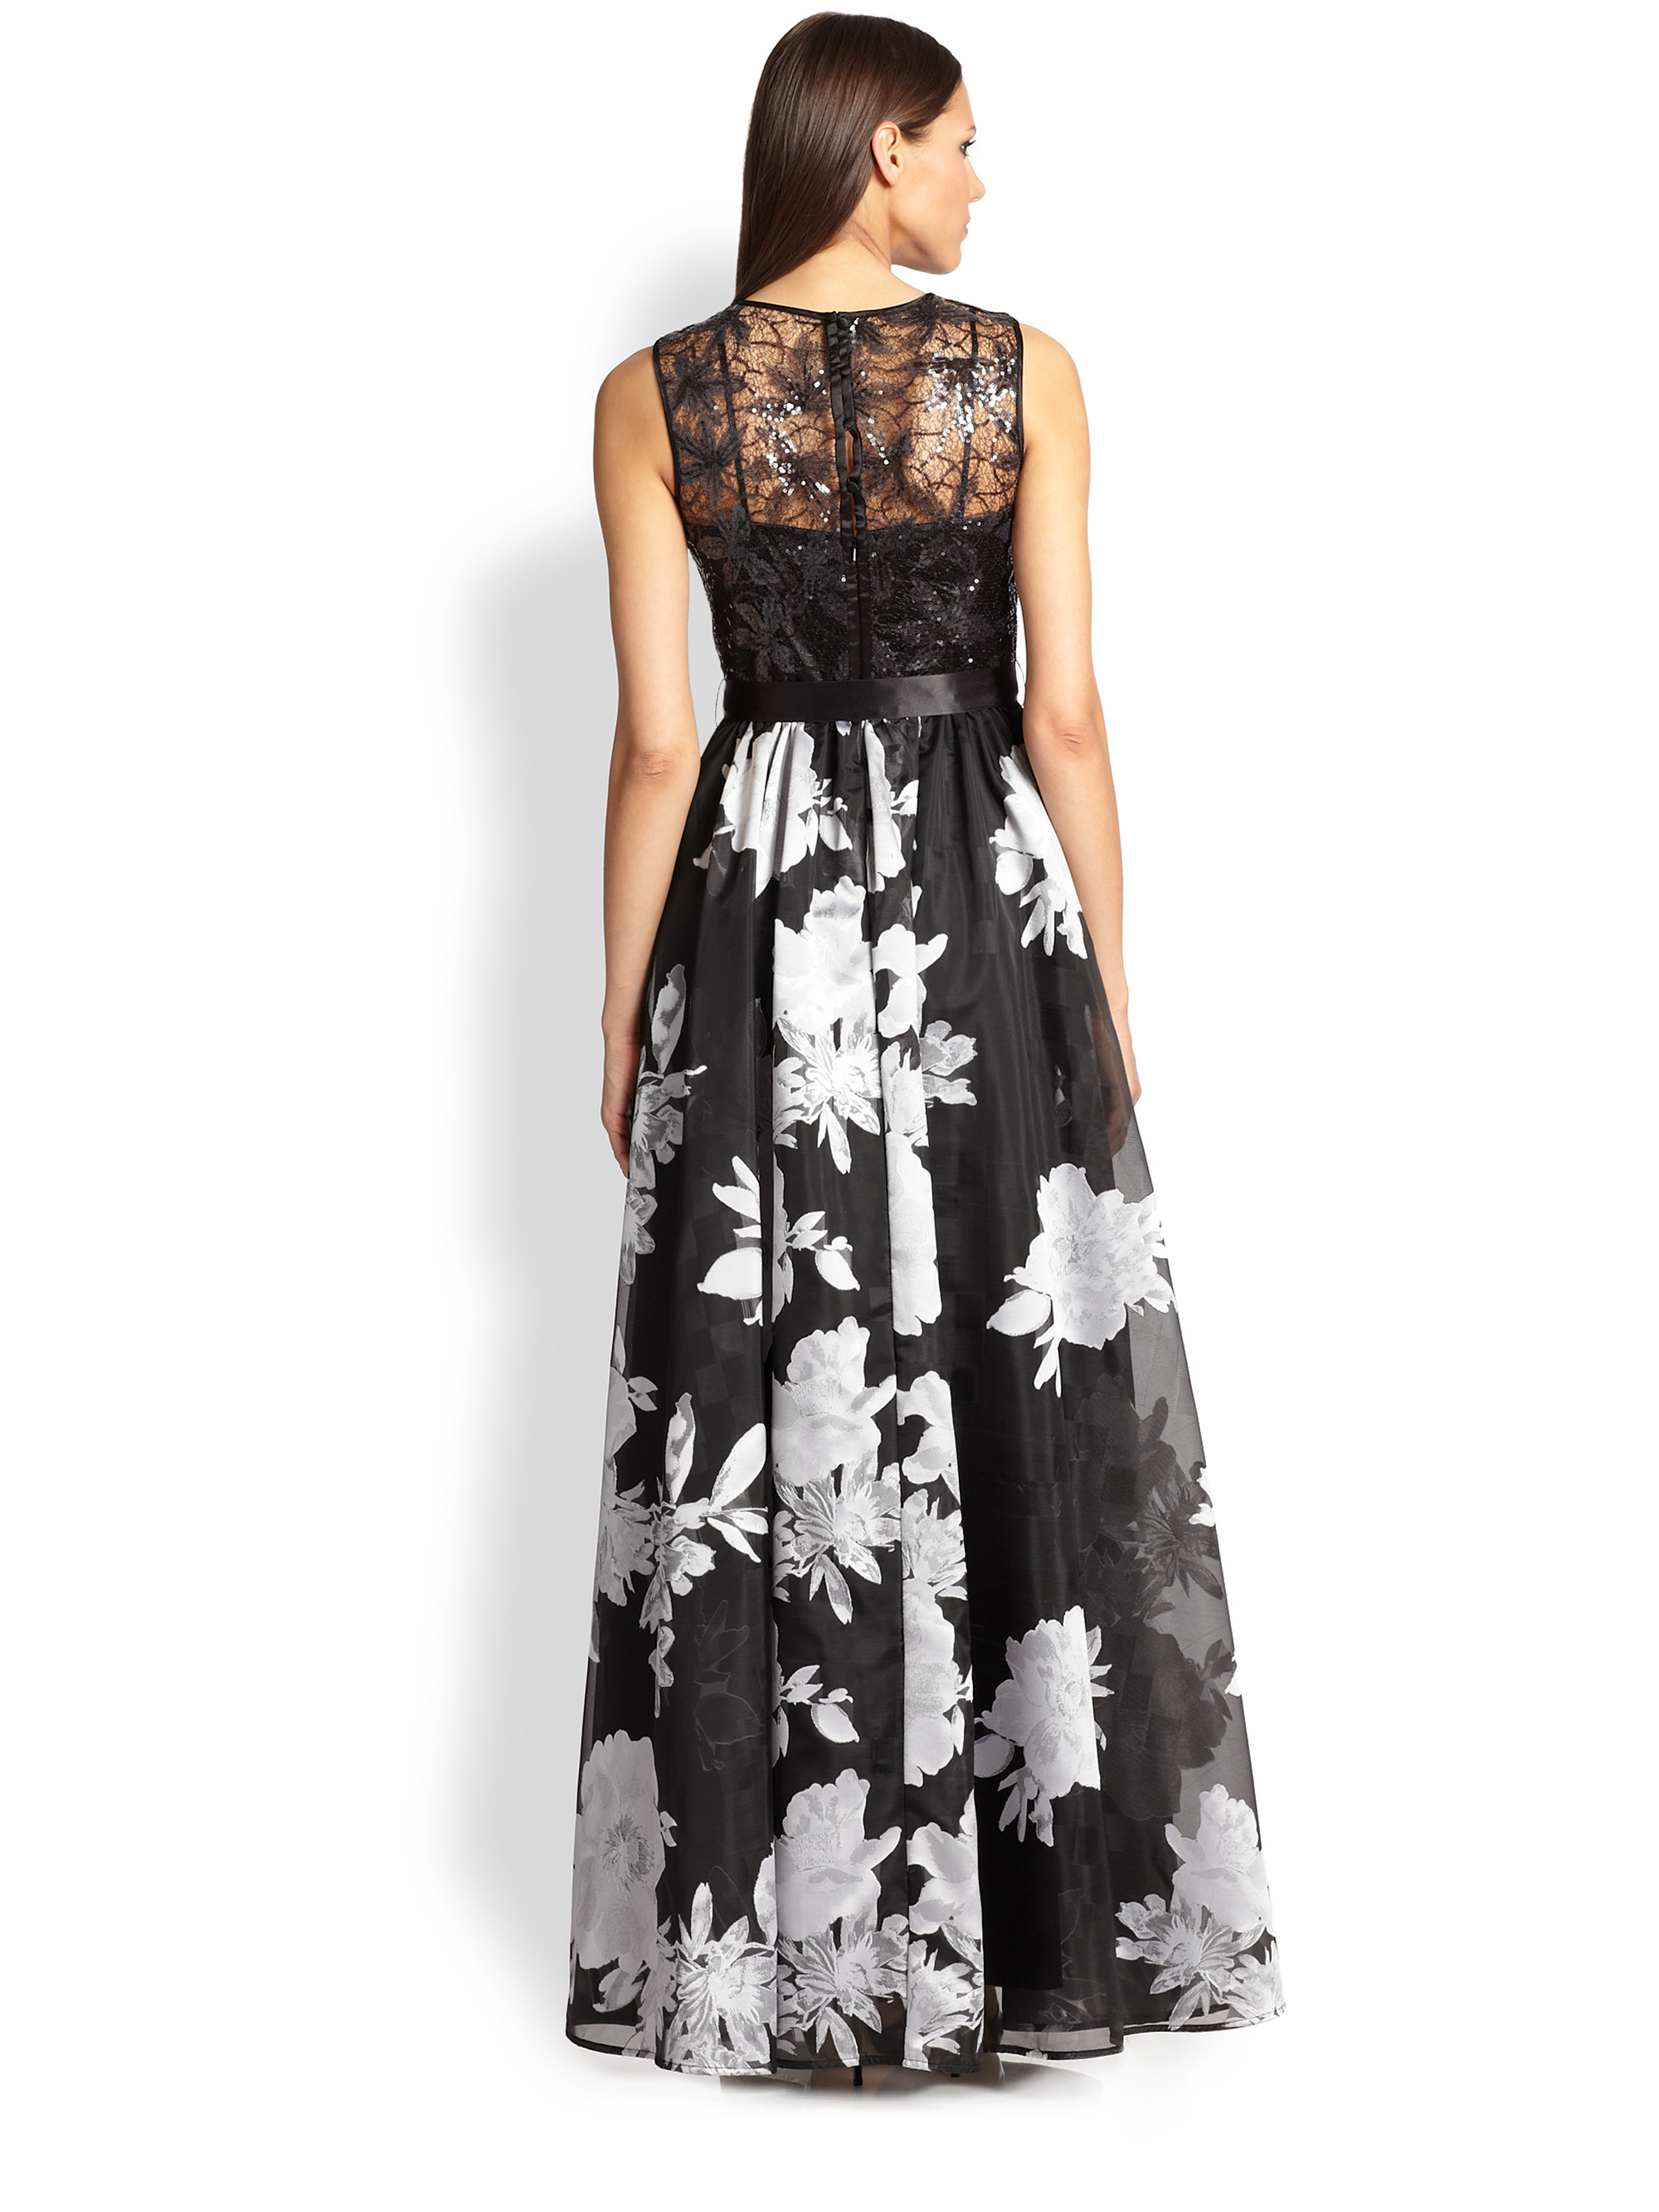 Teri Jon Sequin Lace Top Amp Layered Skirt Gown In Black